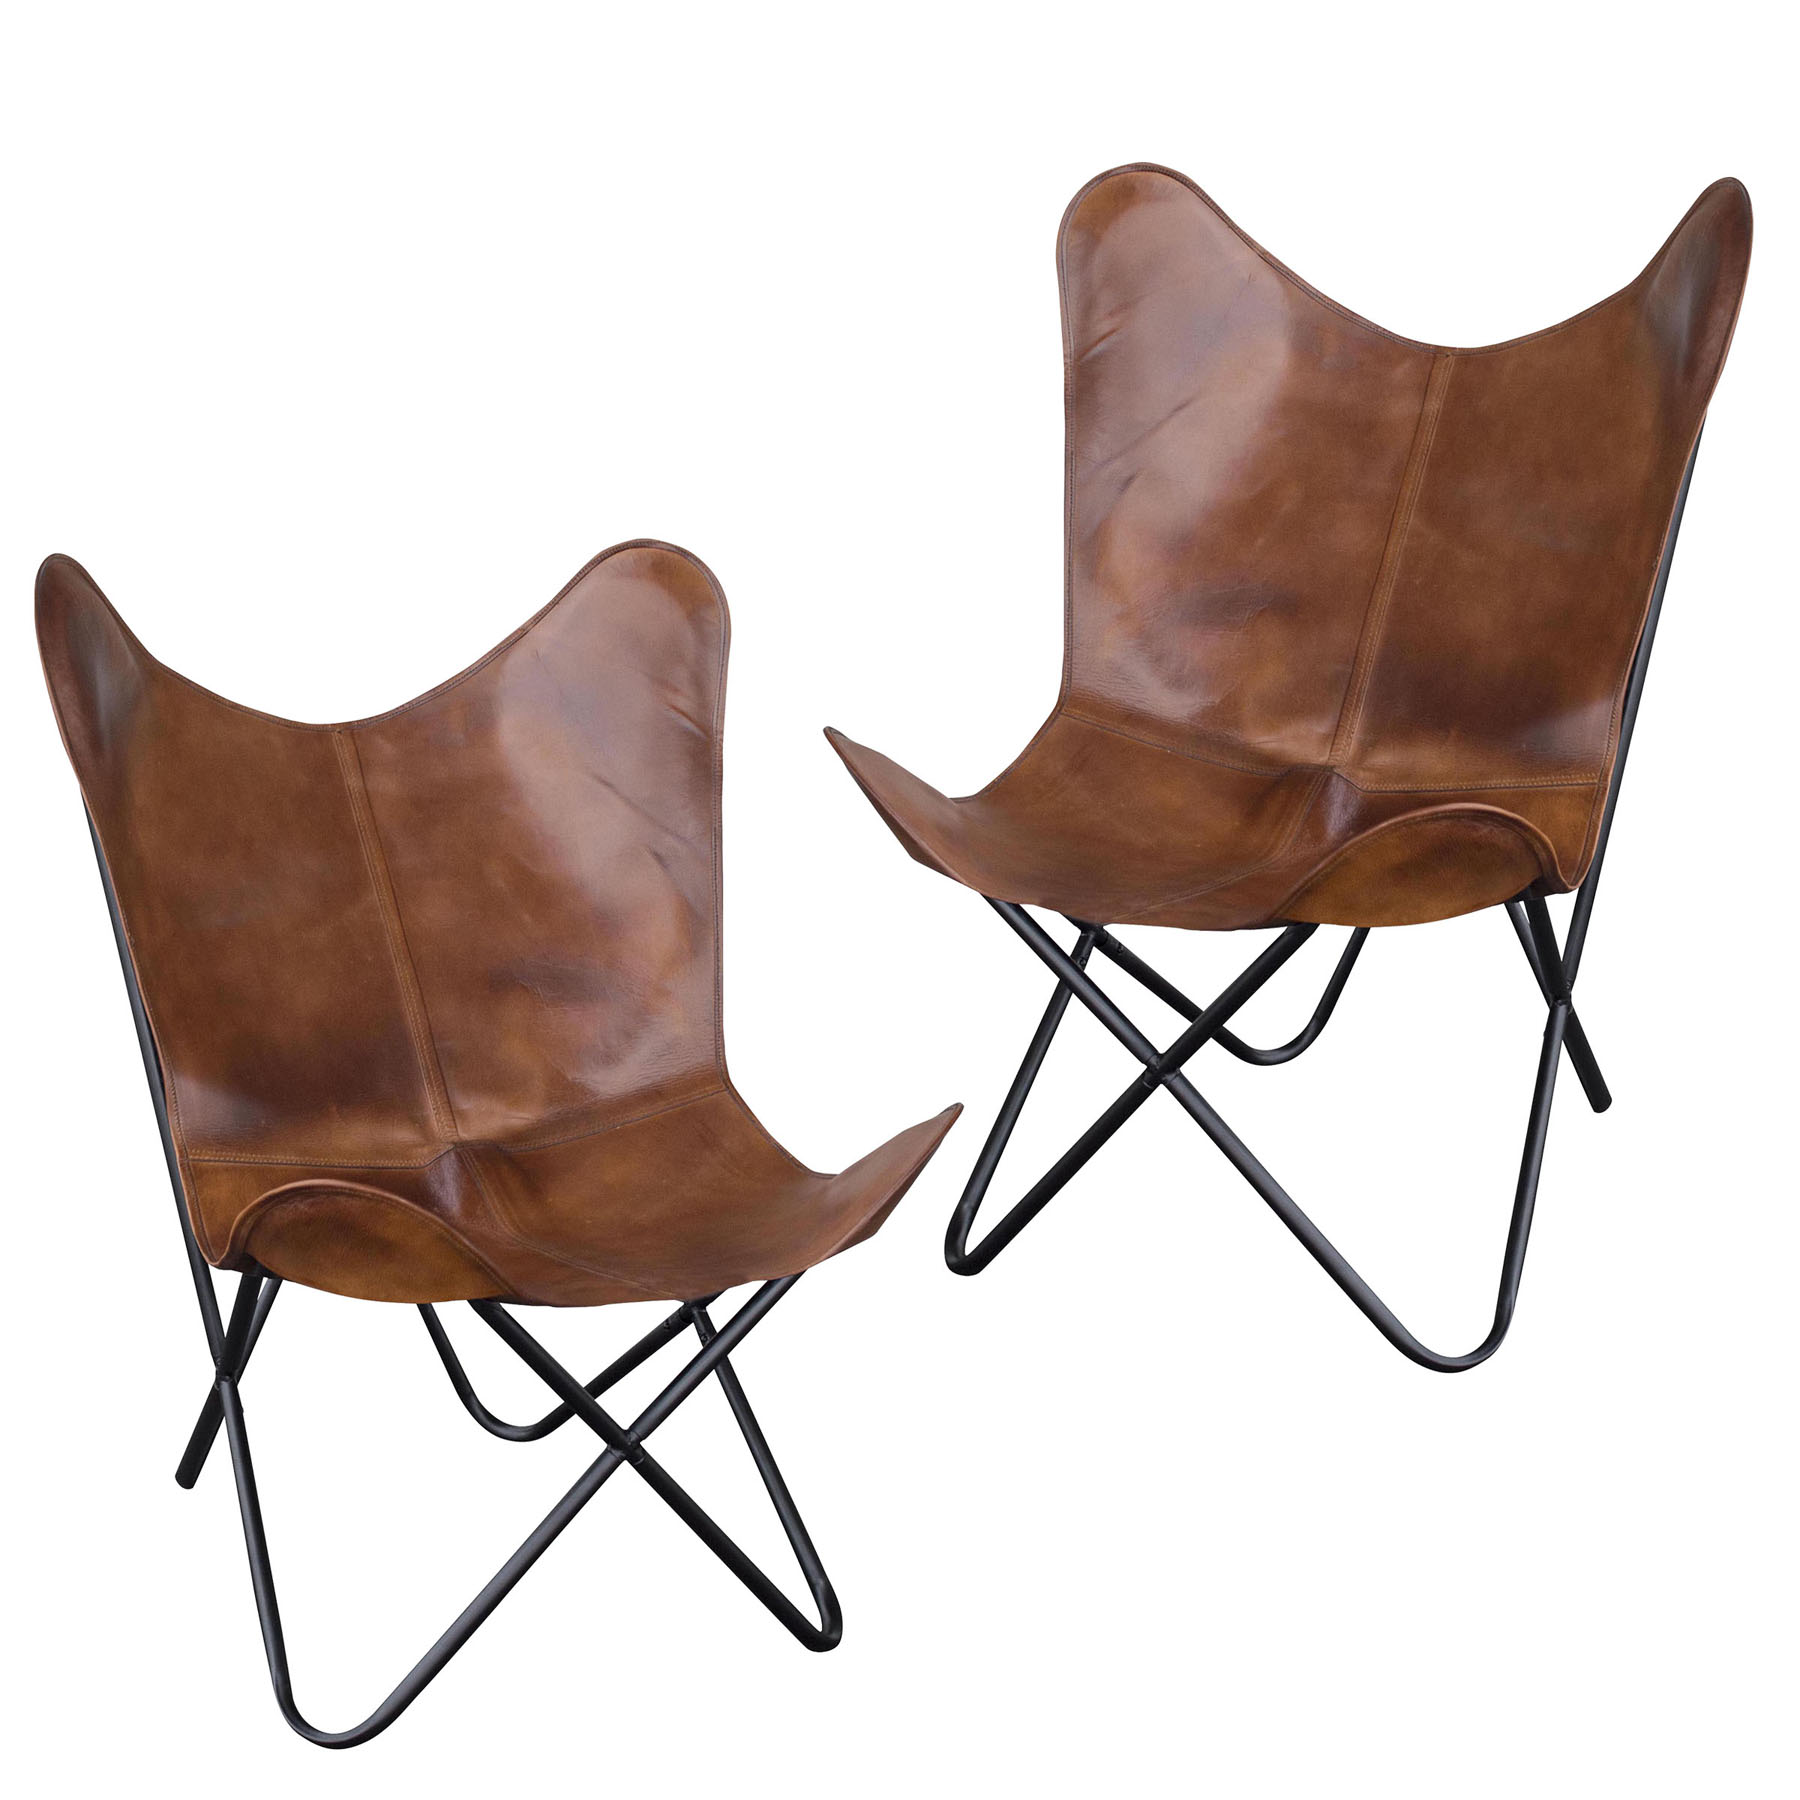 Leather Butterfly Chair in Natural Tan, 2 Piece Set